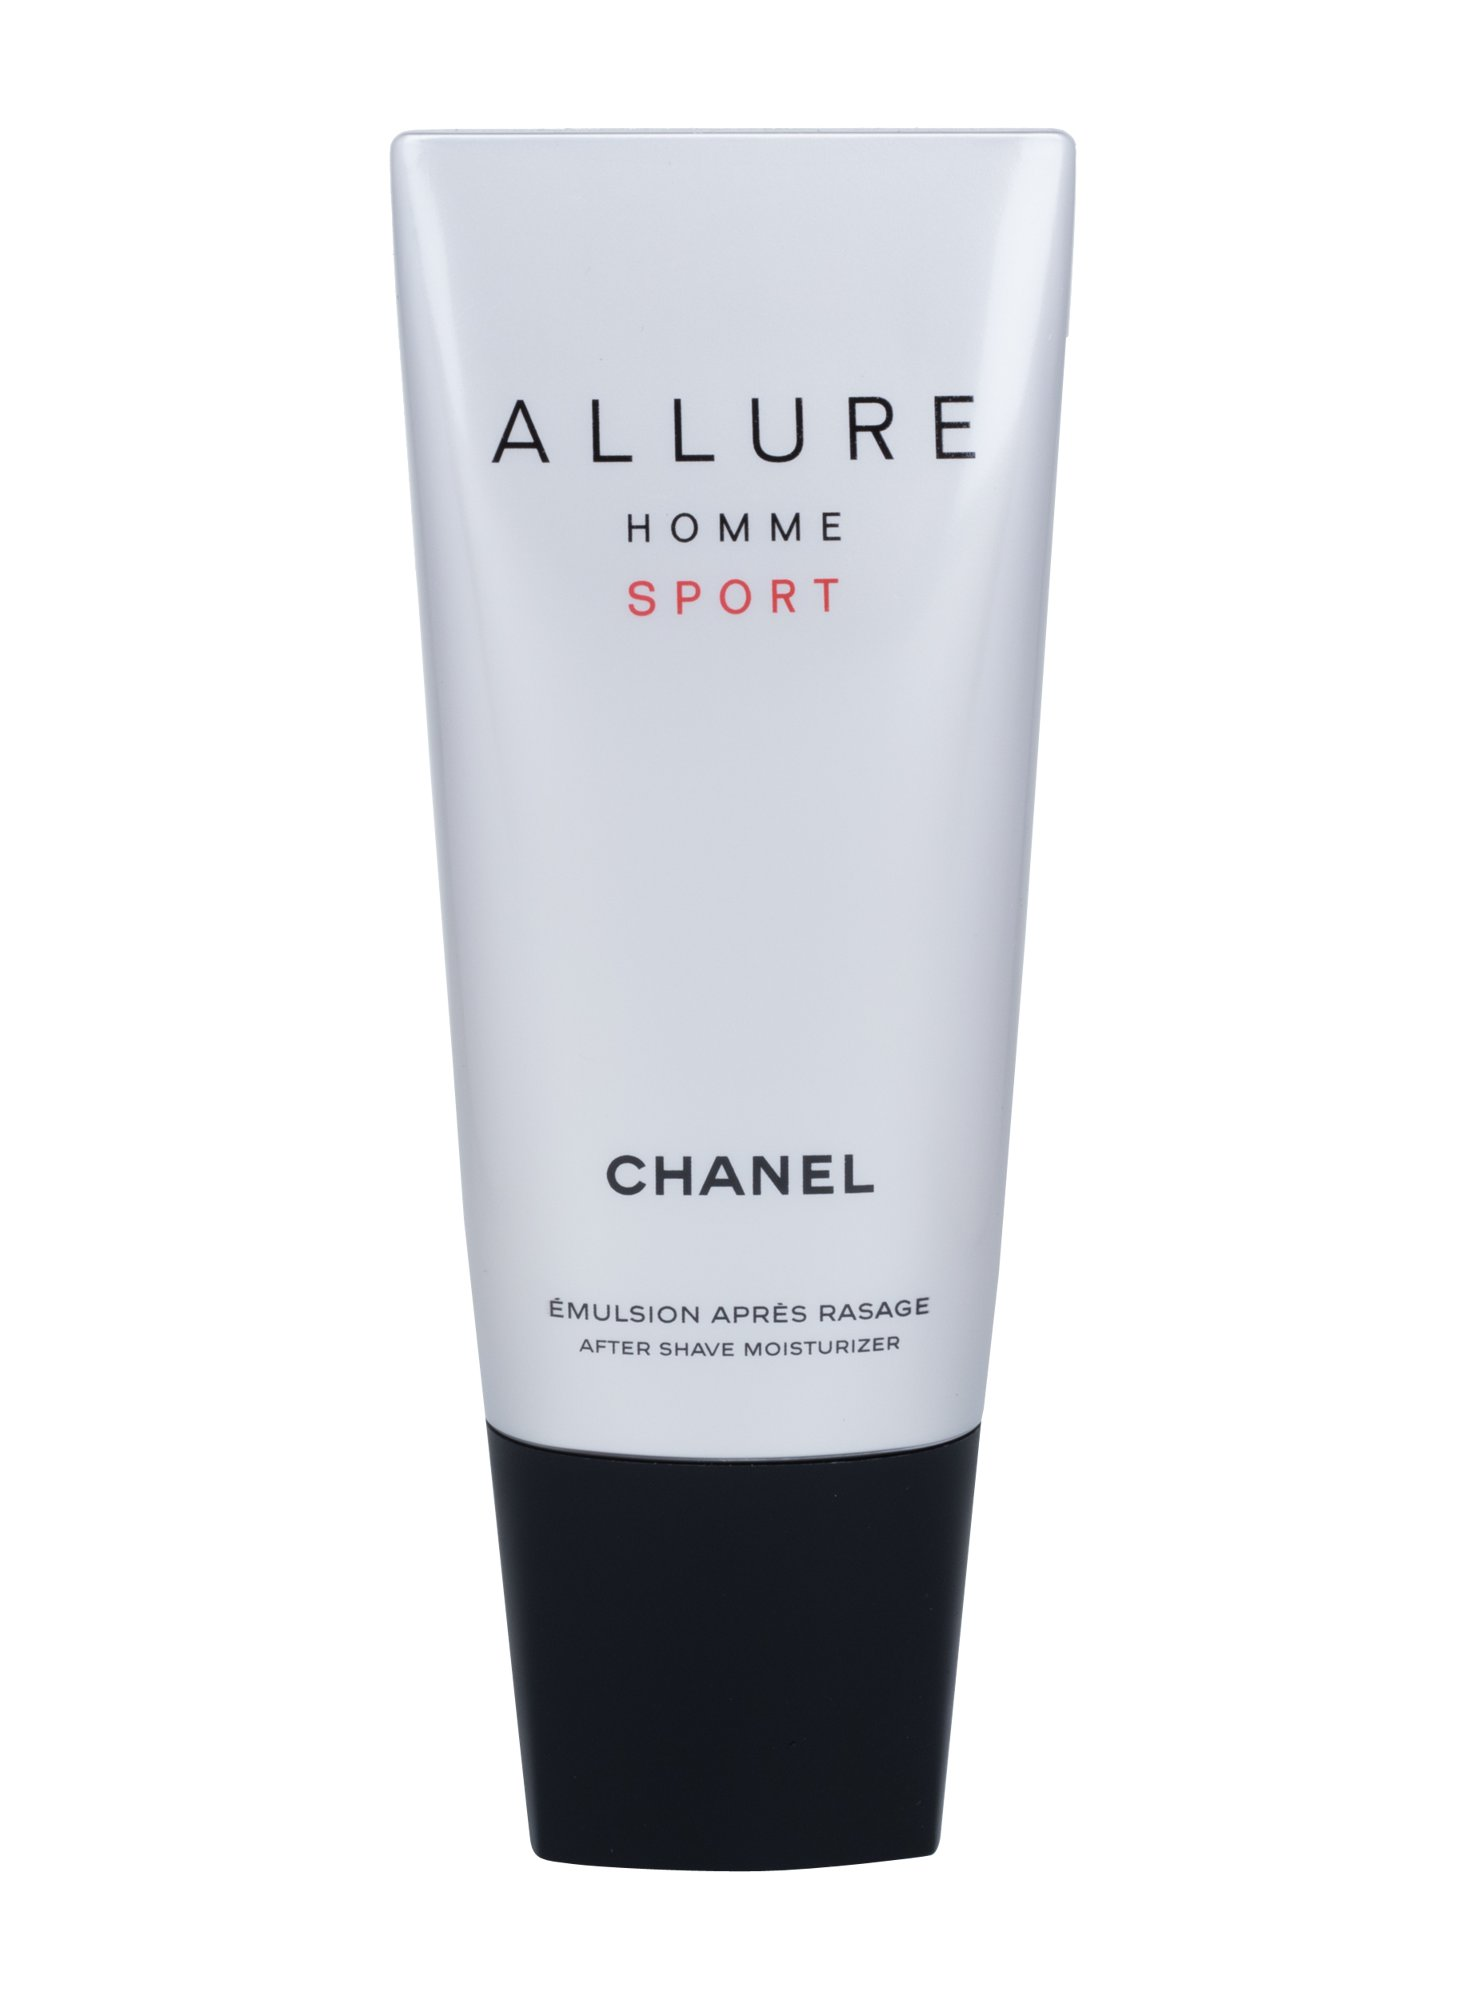 Chanel Allure Homme Sport, After shave balm 100ml